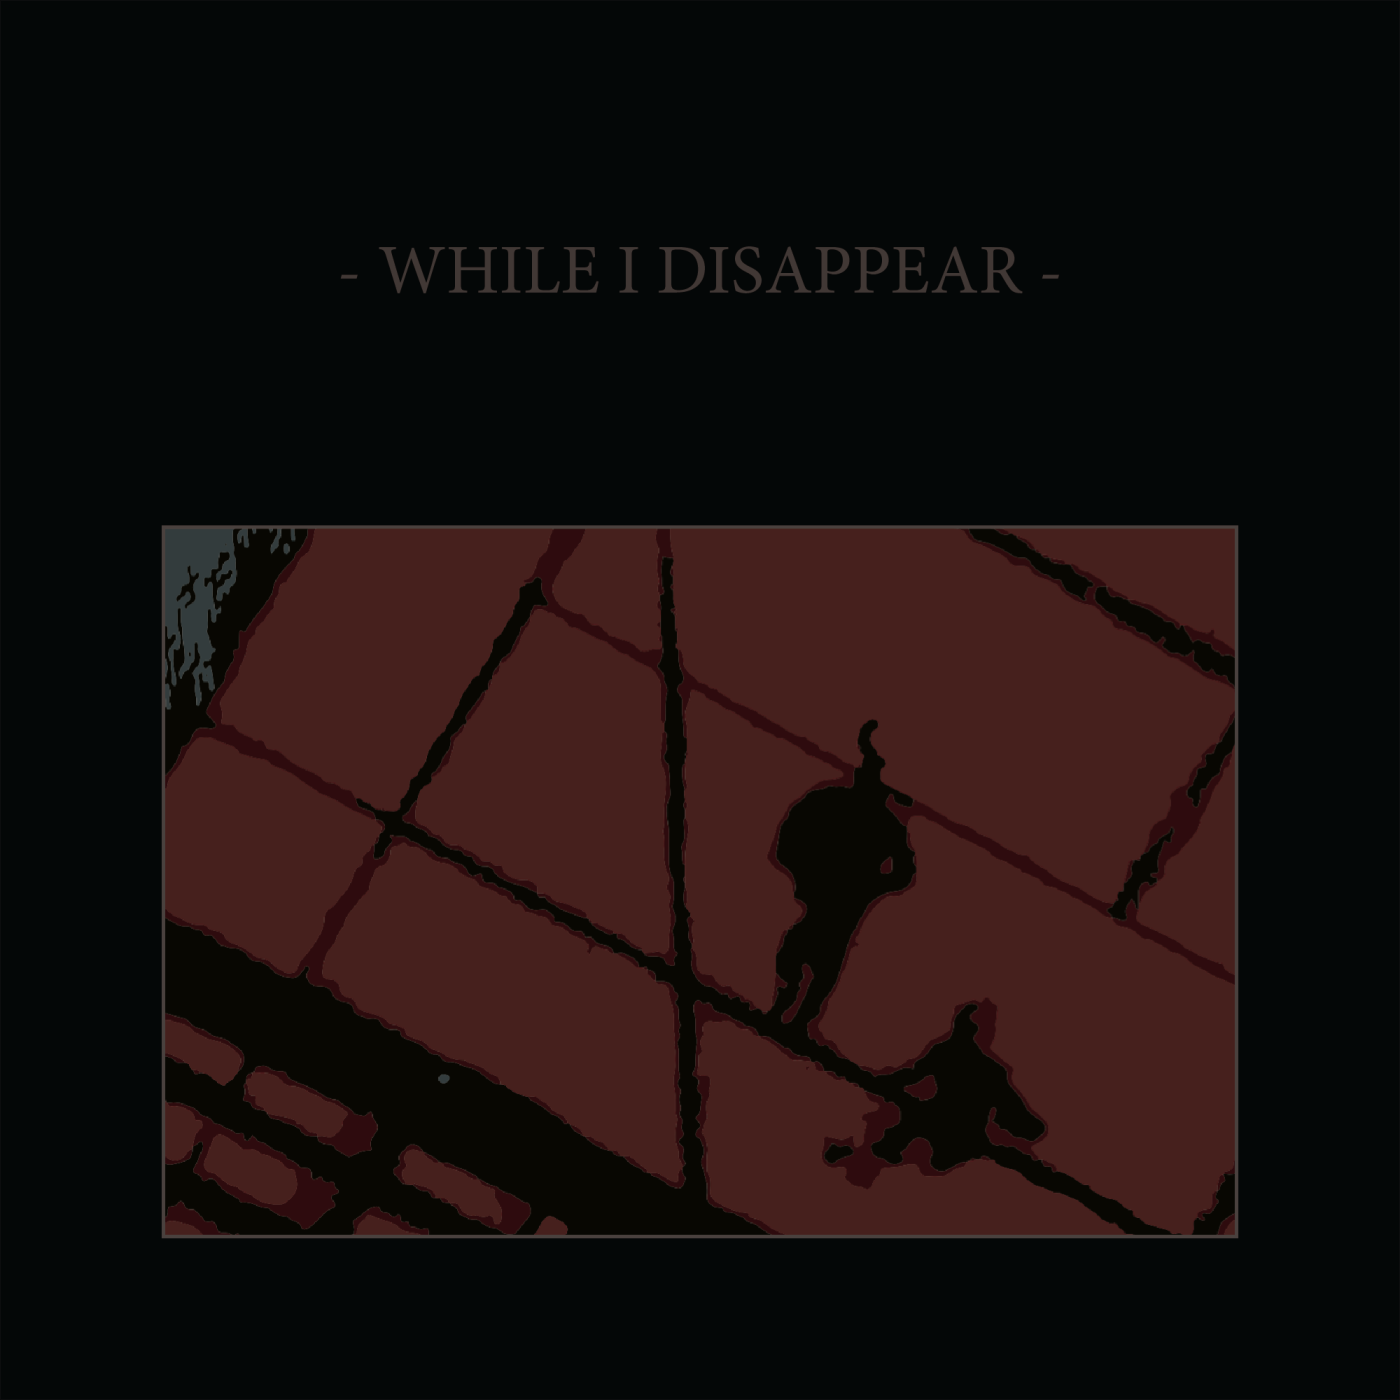 This Cold Night - While I Disappear (ep; 2016)